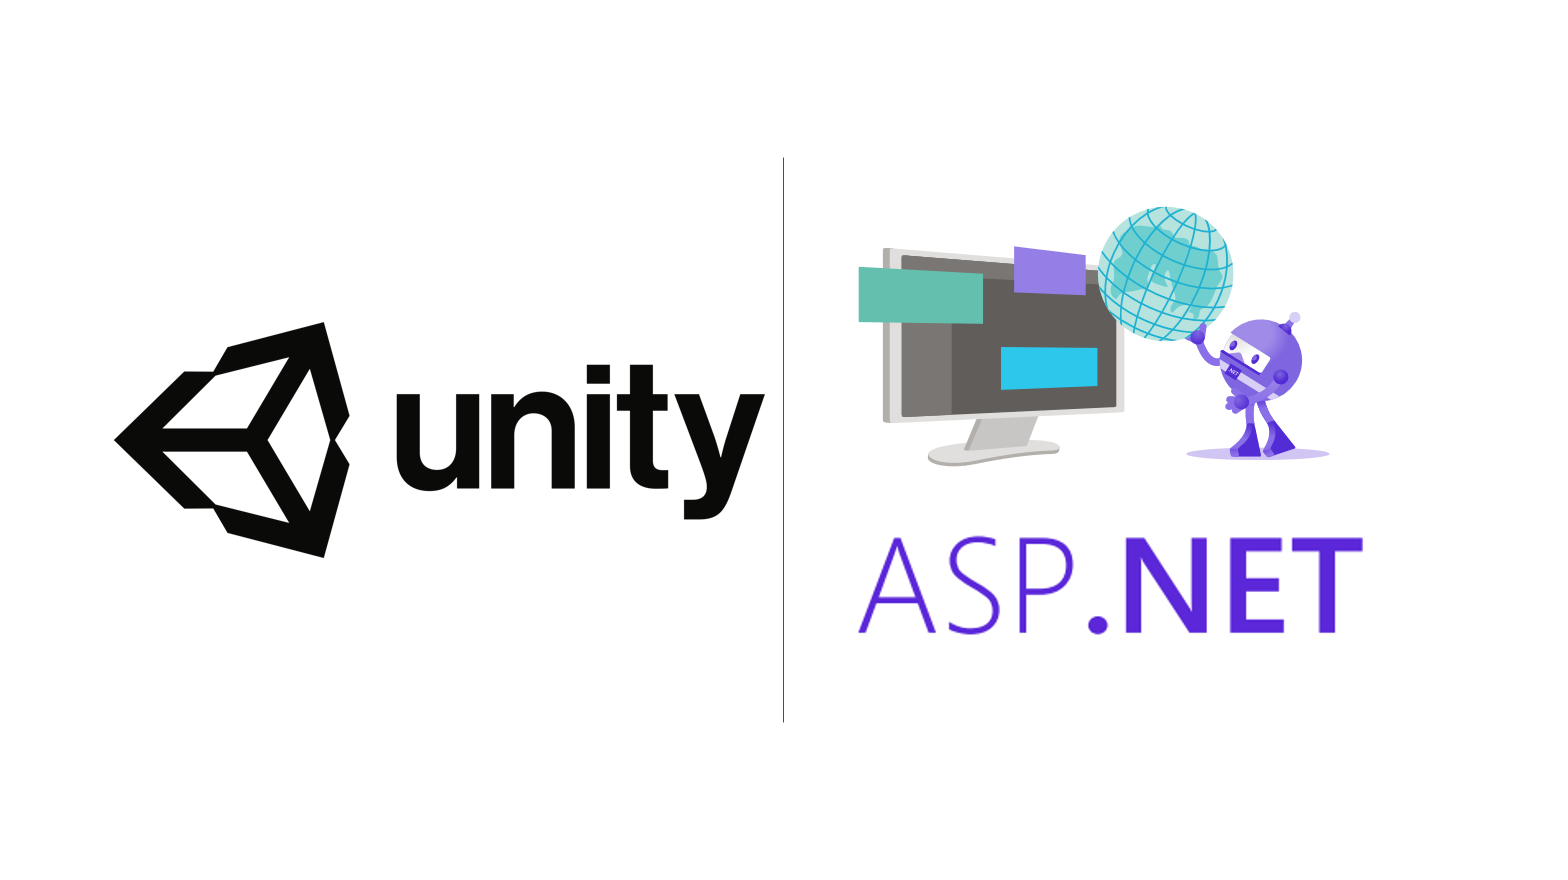 Unity logo and ASP.NET logo next to one another